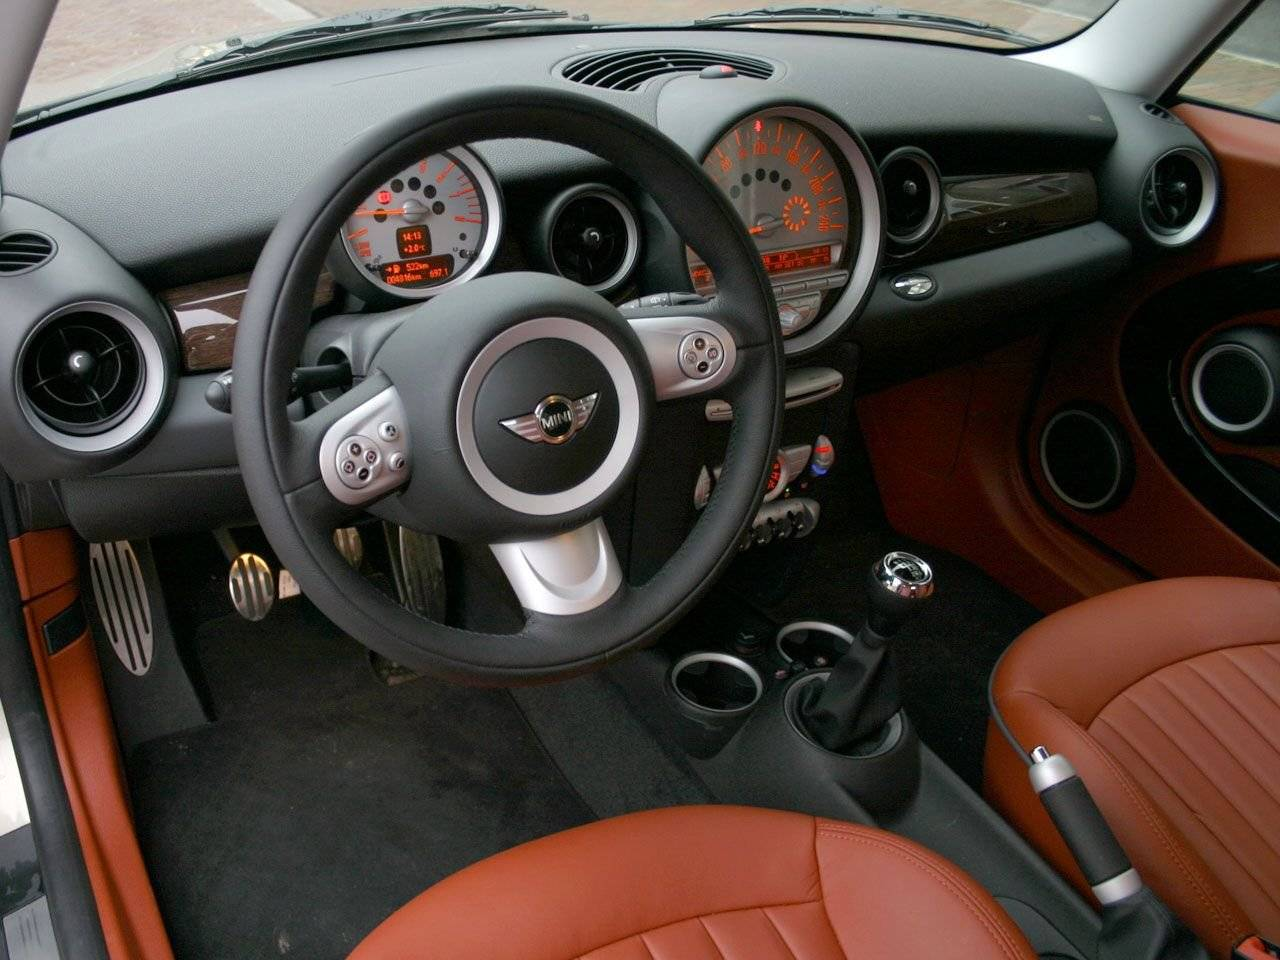 Test mini cooper s autotests for Interieur id